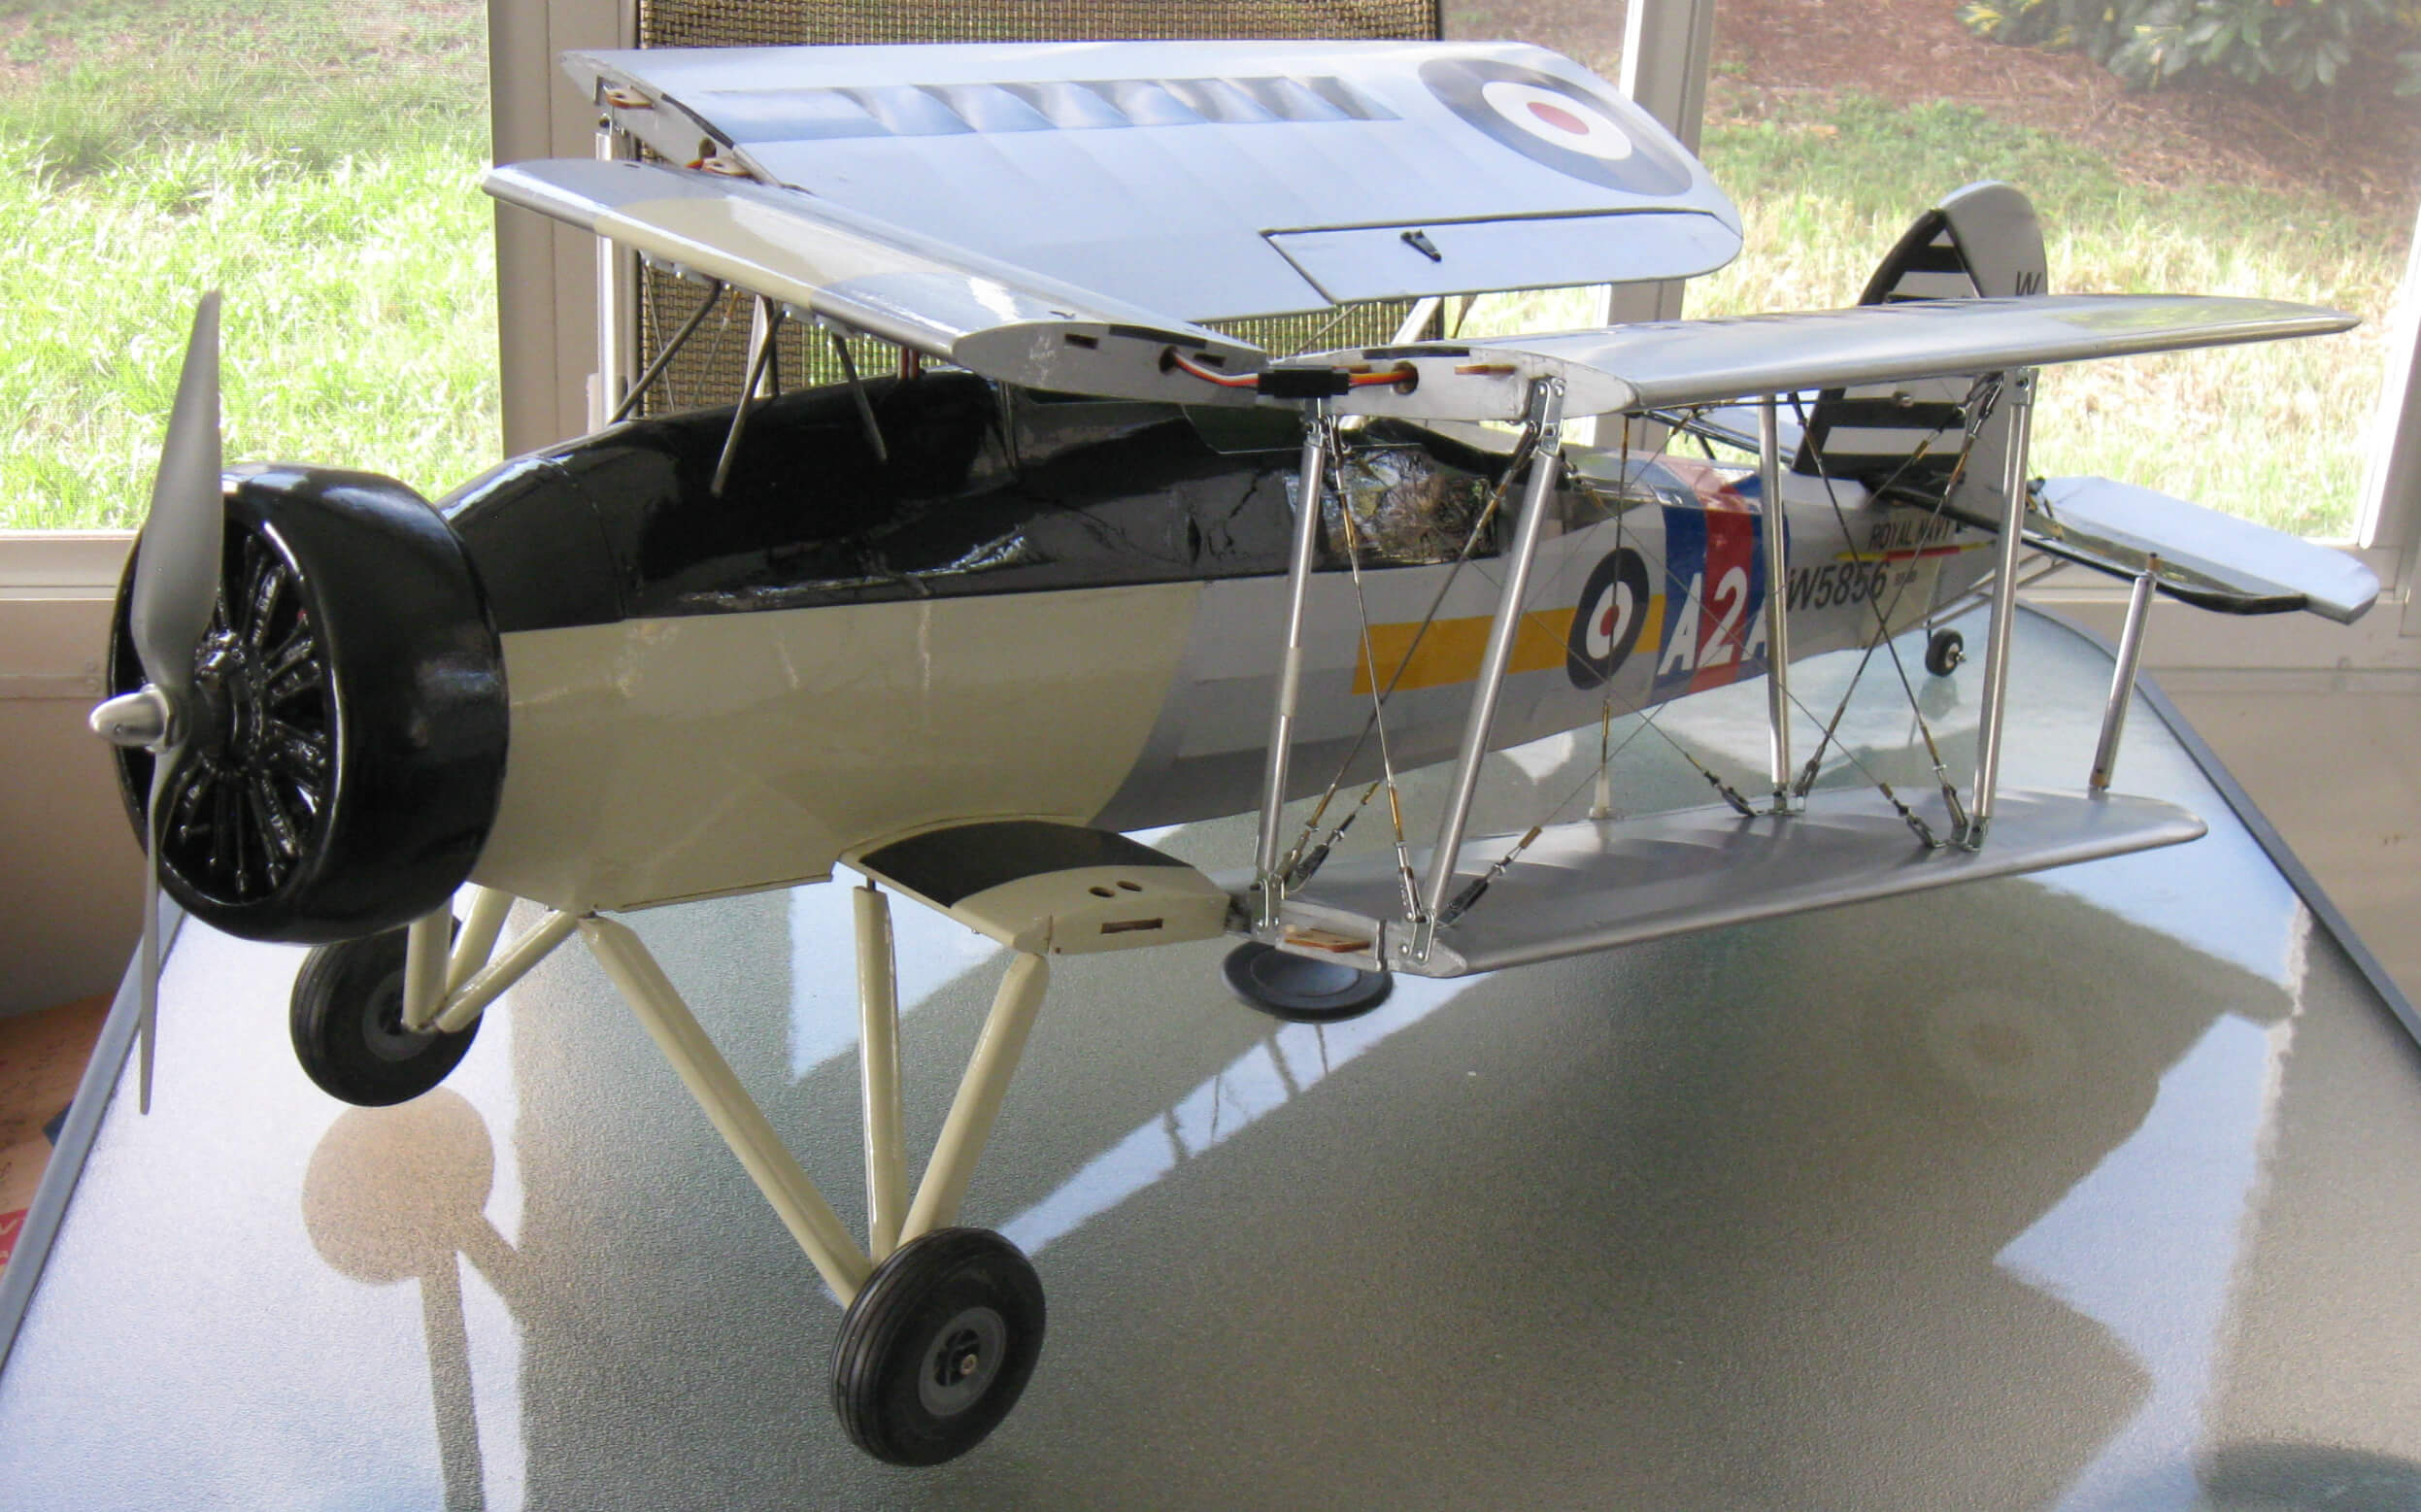 RC Fairey Swordfish with wings folded and ready for transportation to the flying field.